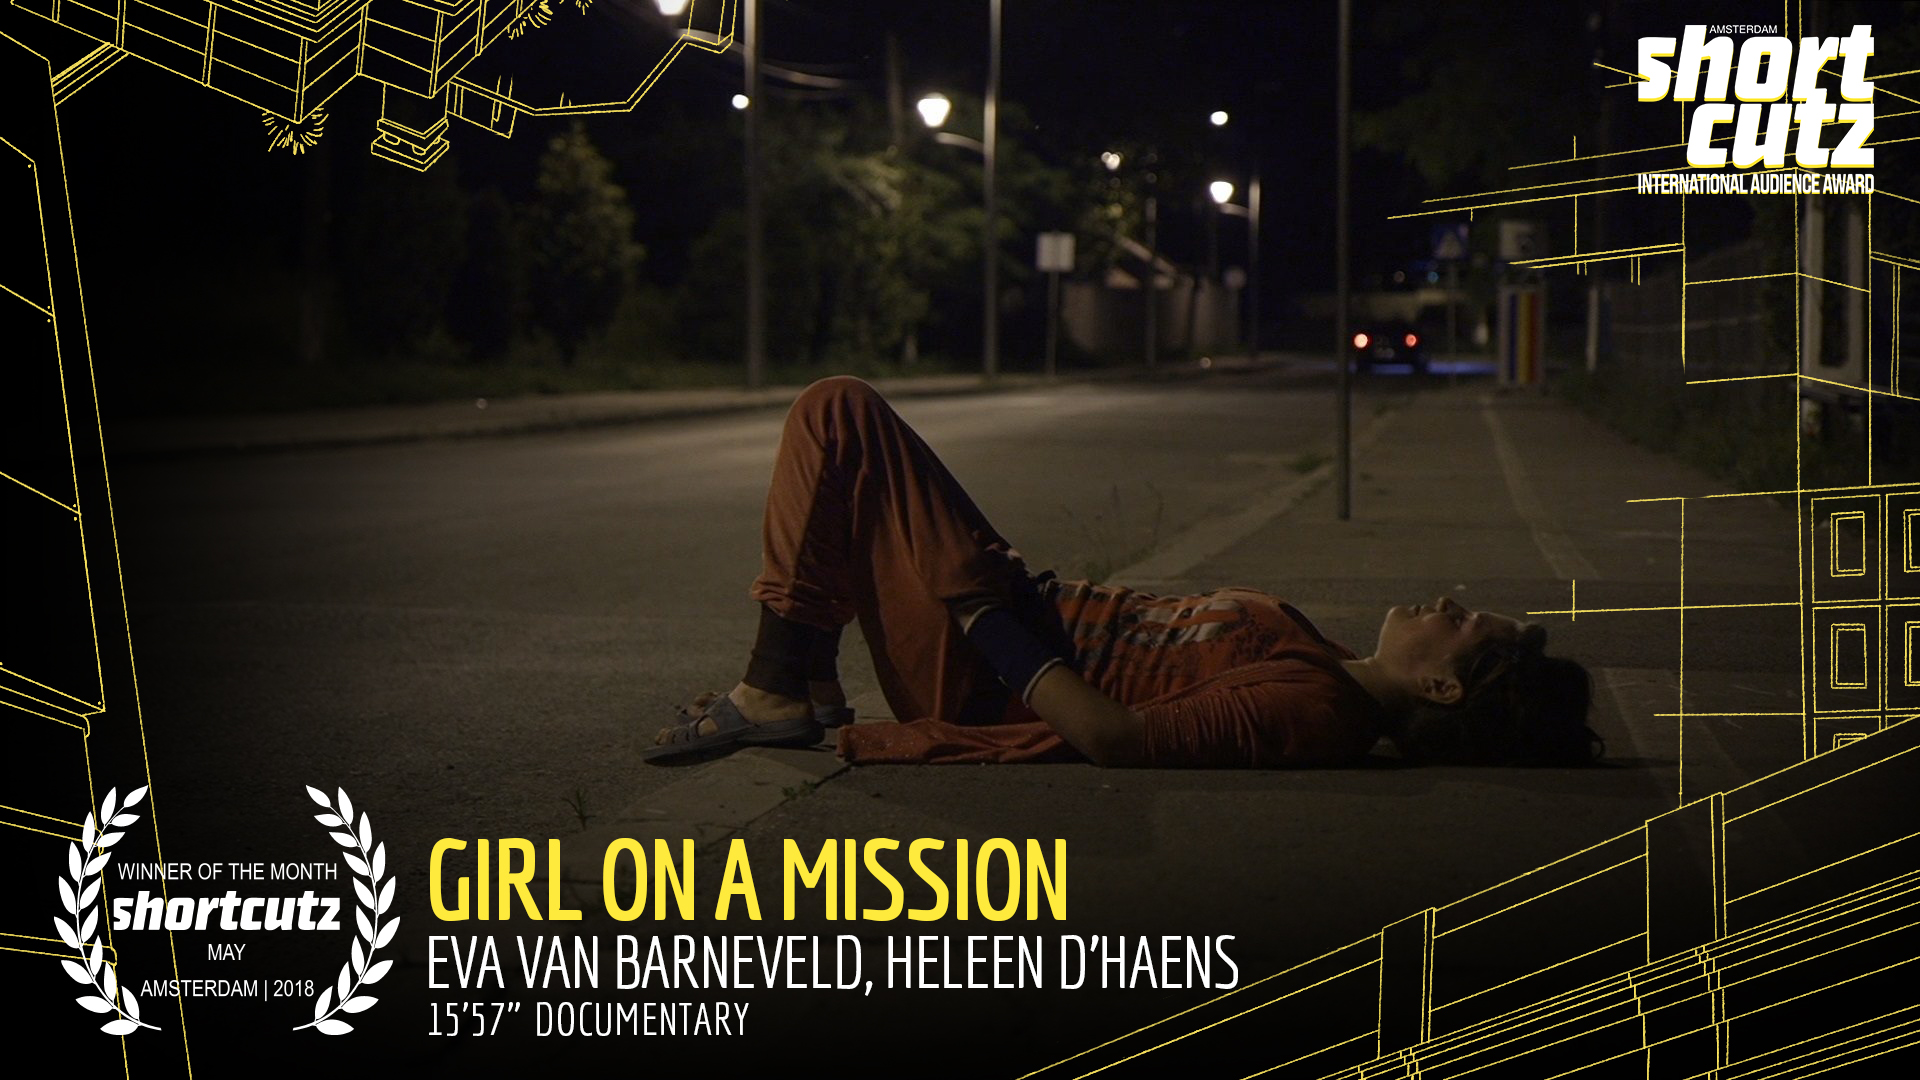 06  Still Laurel  GIRL ON A MISSION  Documentary  15min 57sec.jpg